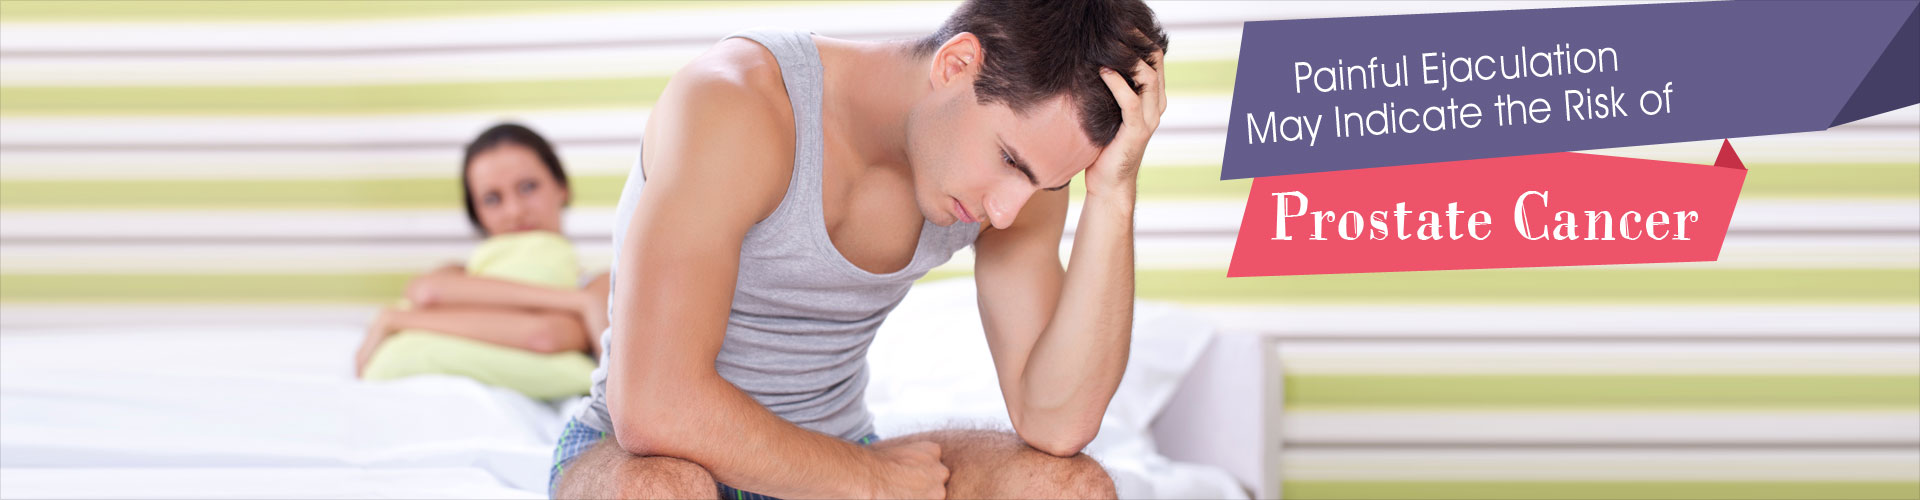 Five Alarming Cancer Symptoms Men Shouldn't Ignore